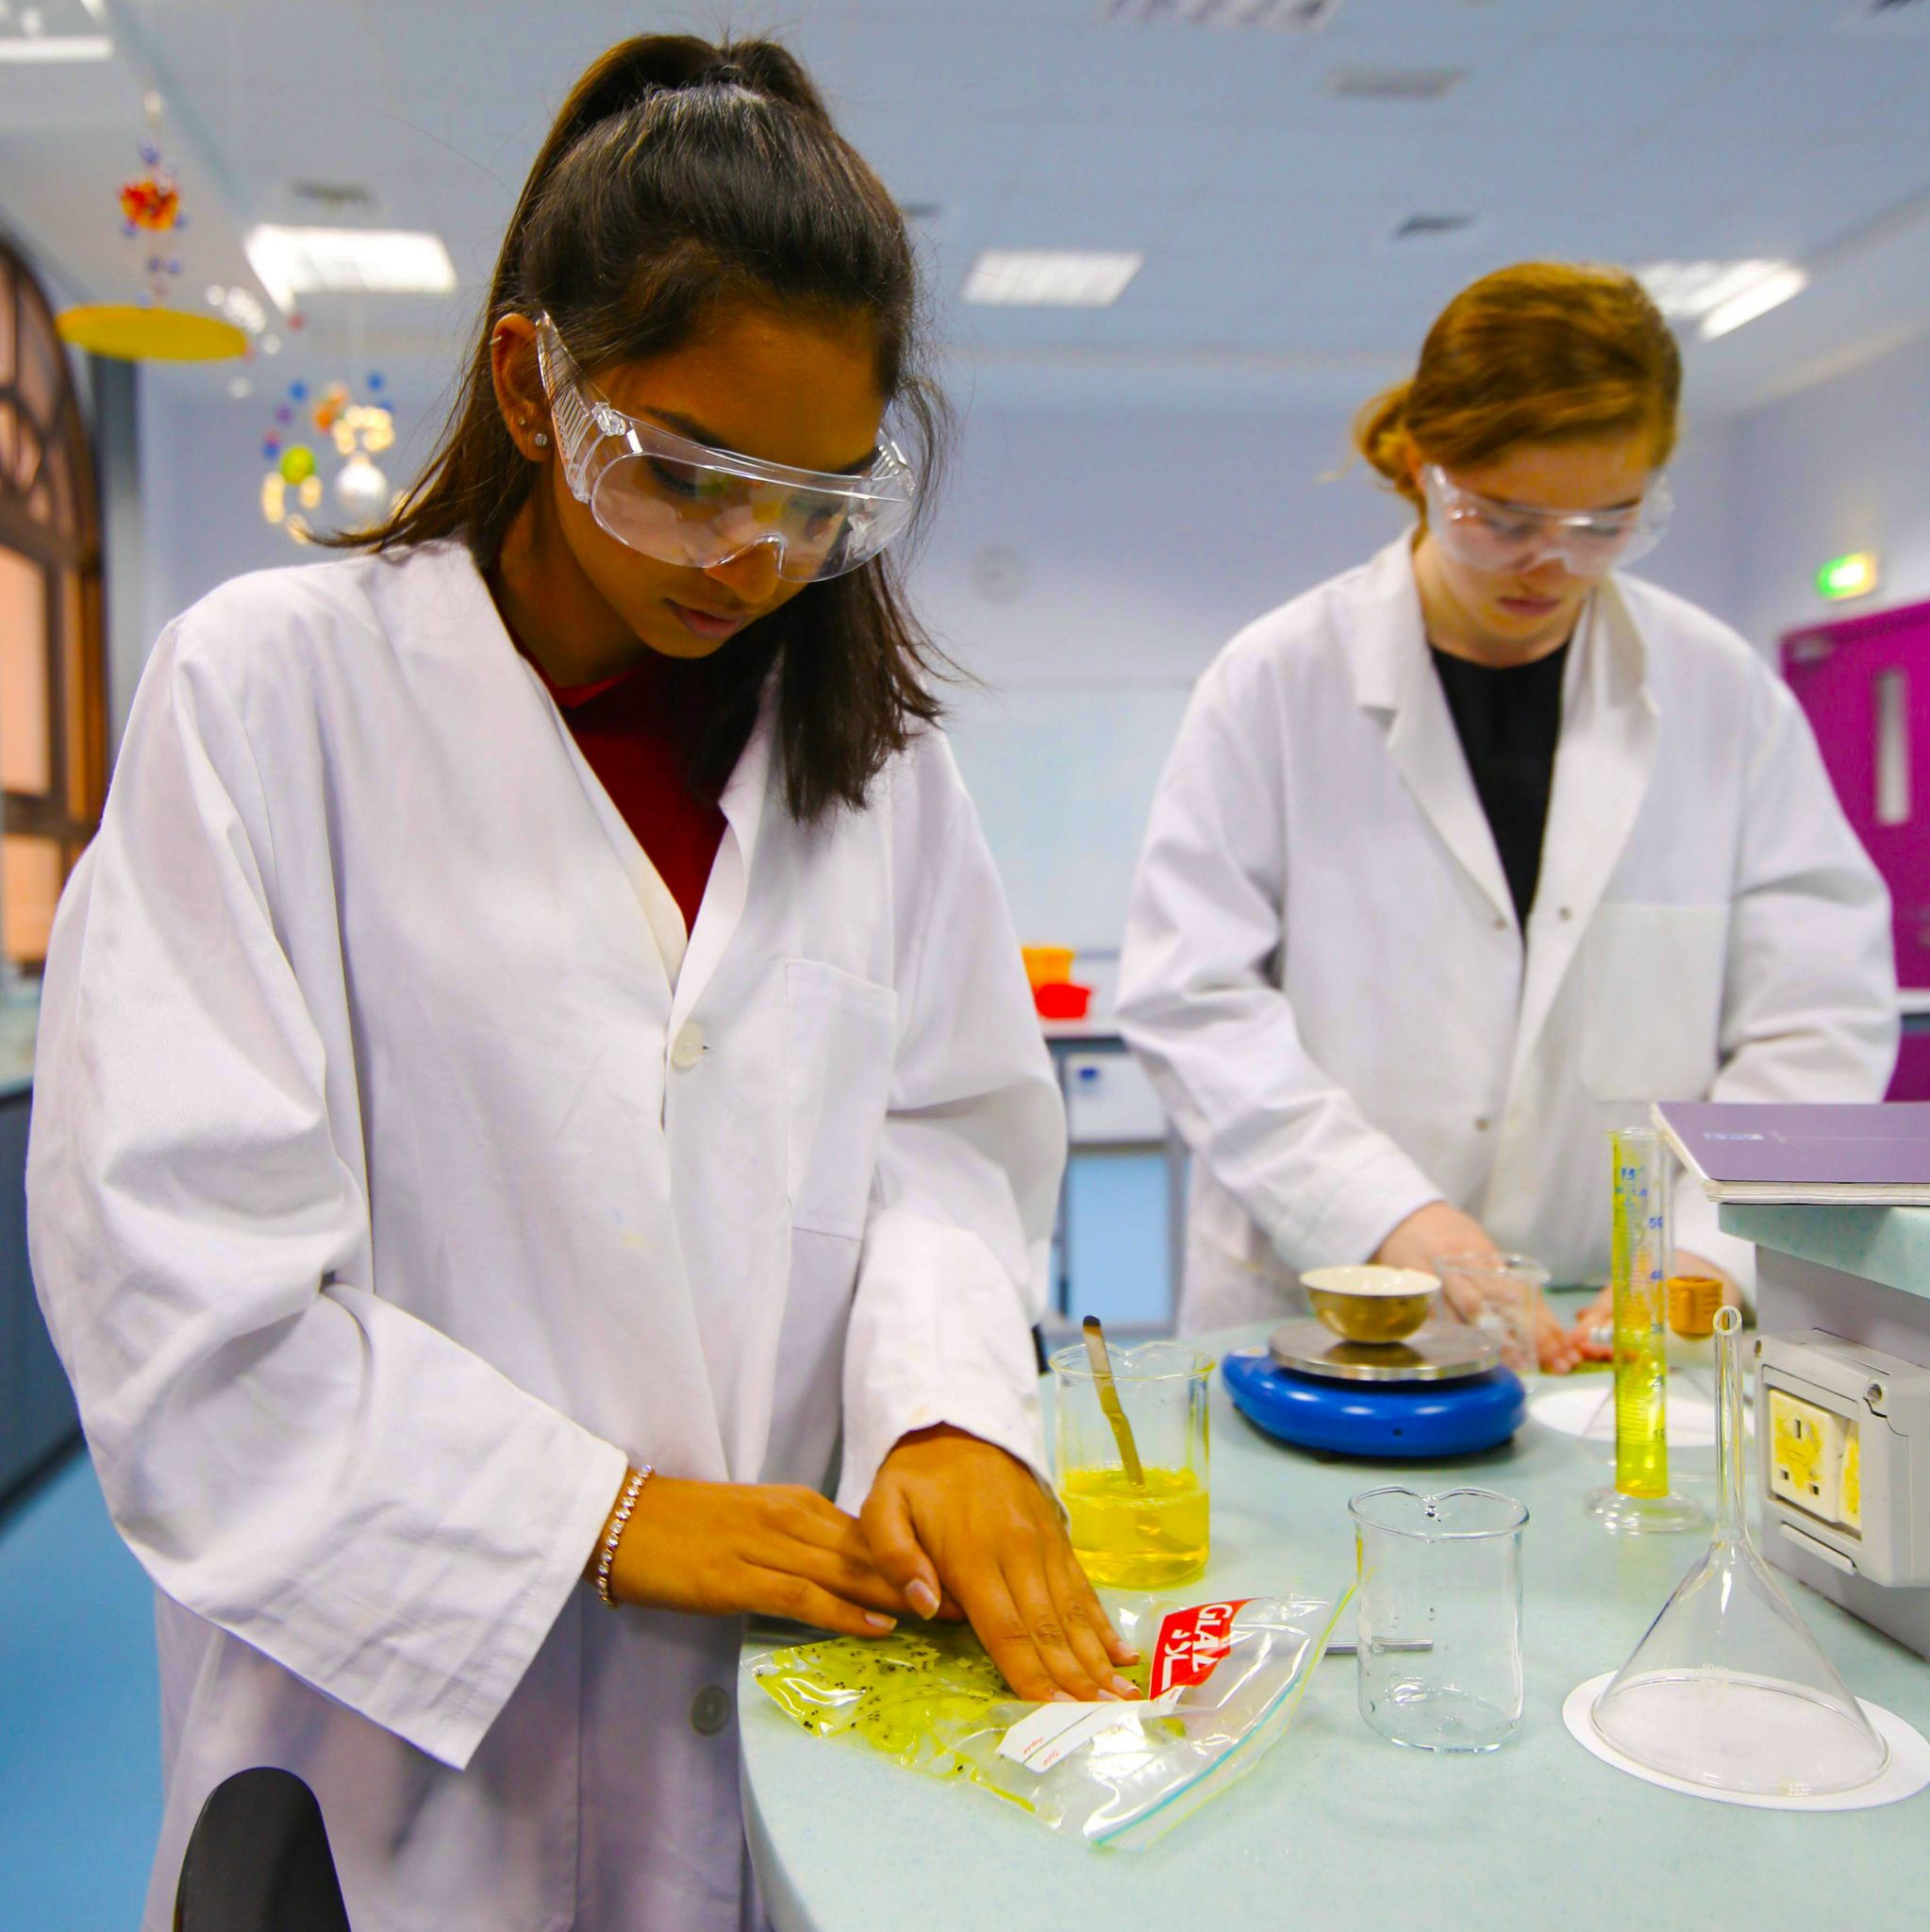 Science lessons at the British International School Abu Dhabi being held in new labs developed within the school in 2018